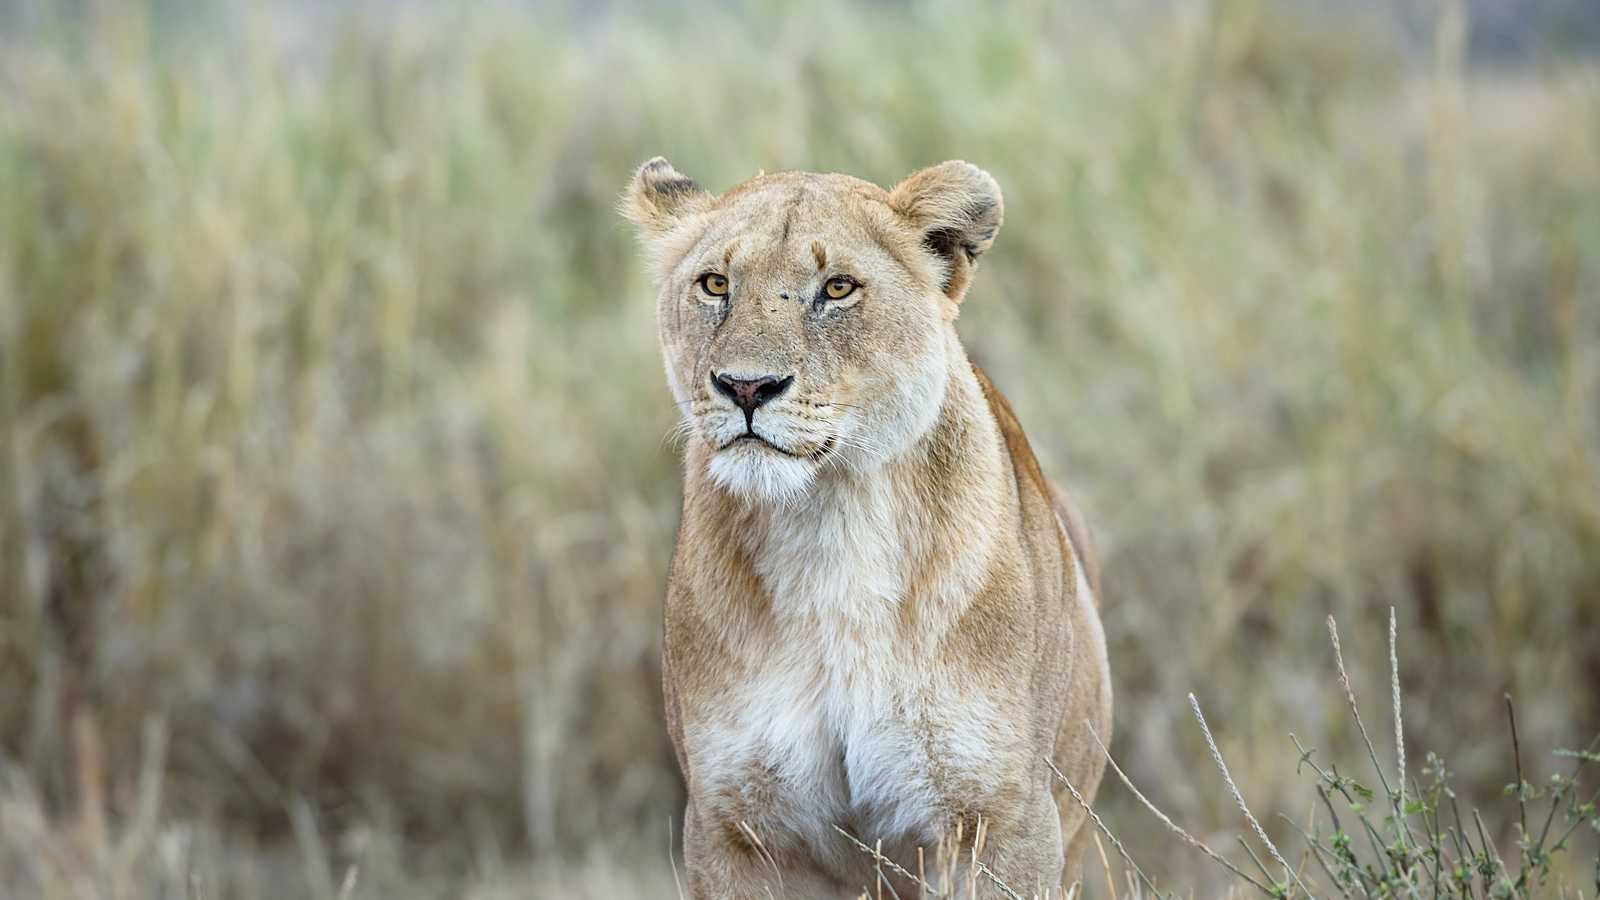 Discover beautiful lions in the Serengeti on a Tanzania safari